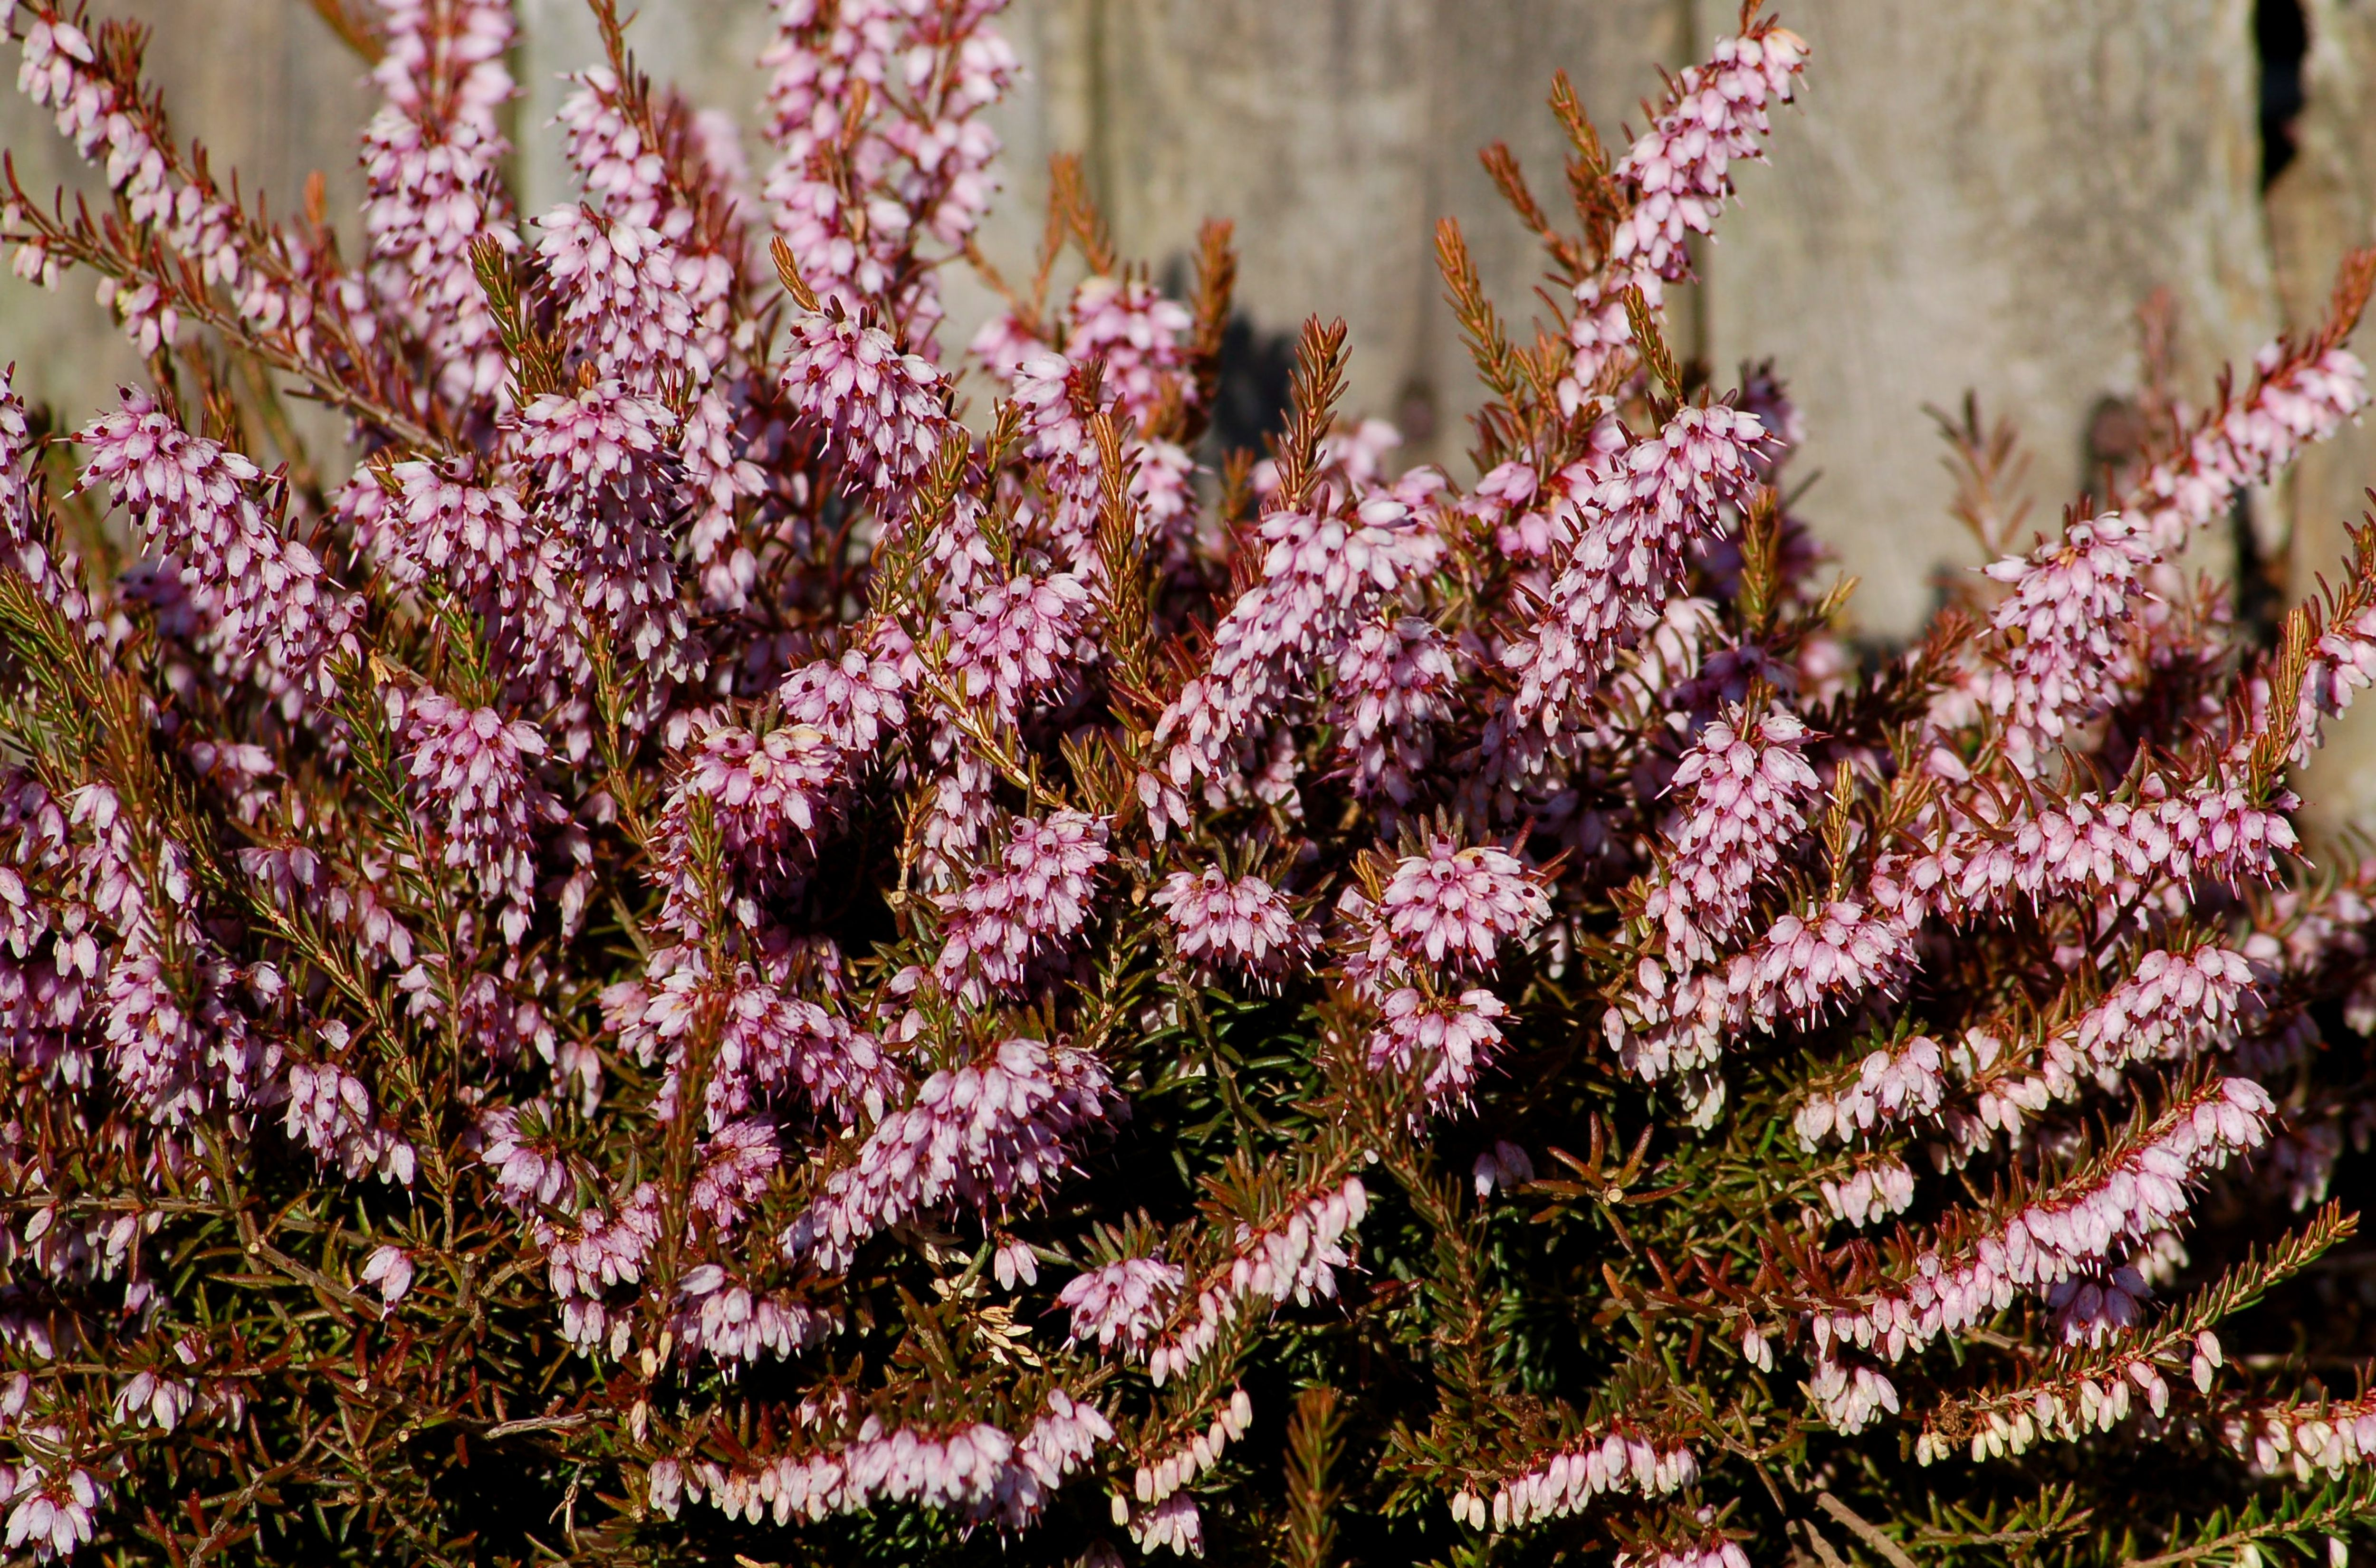 Heather Plants Vs Winter Heaths And How To Grow Them